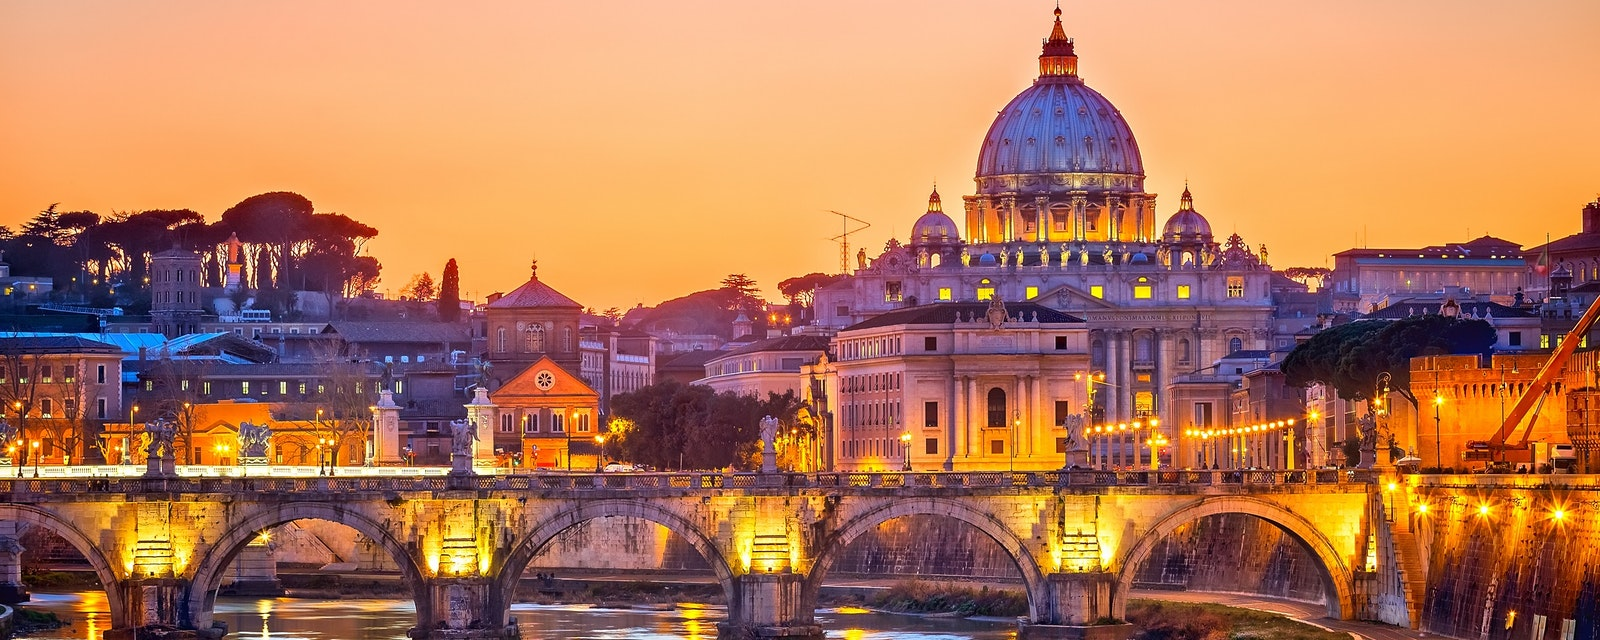 Night,View,At,St.,Peter's,Cathedral,In,Rome,,Italy